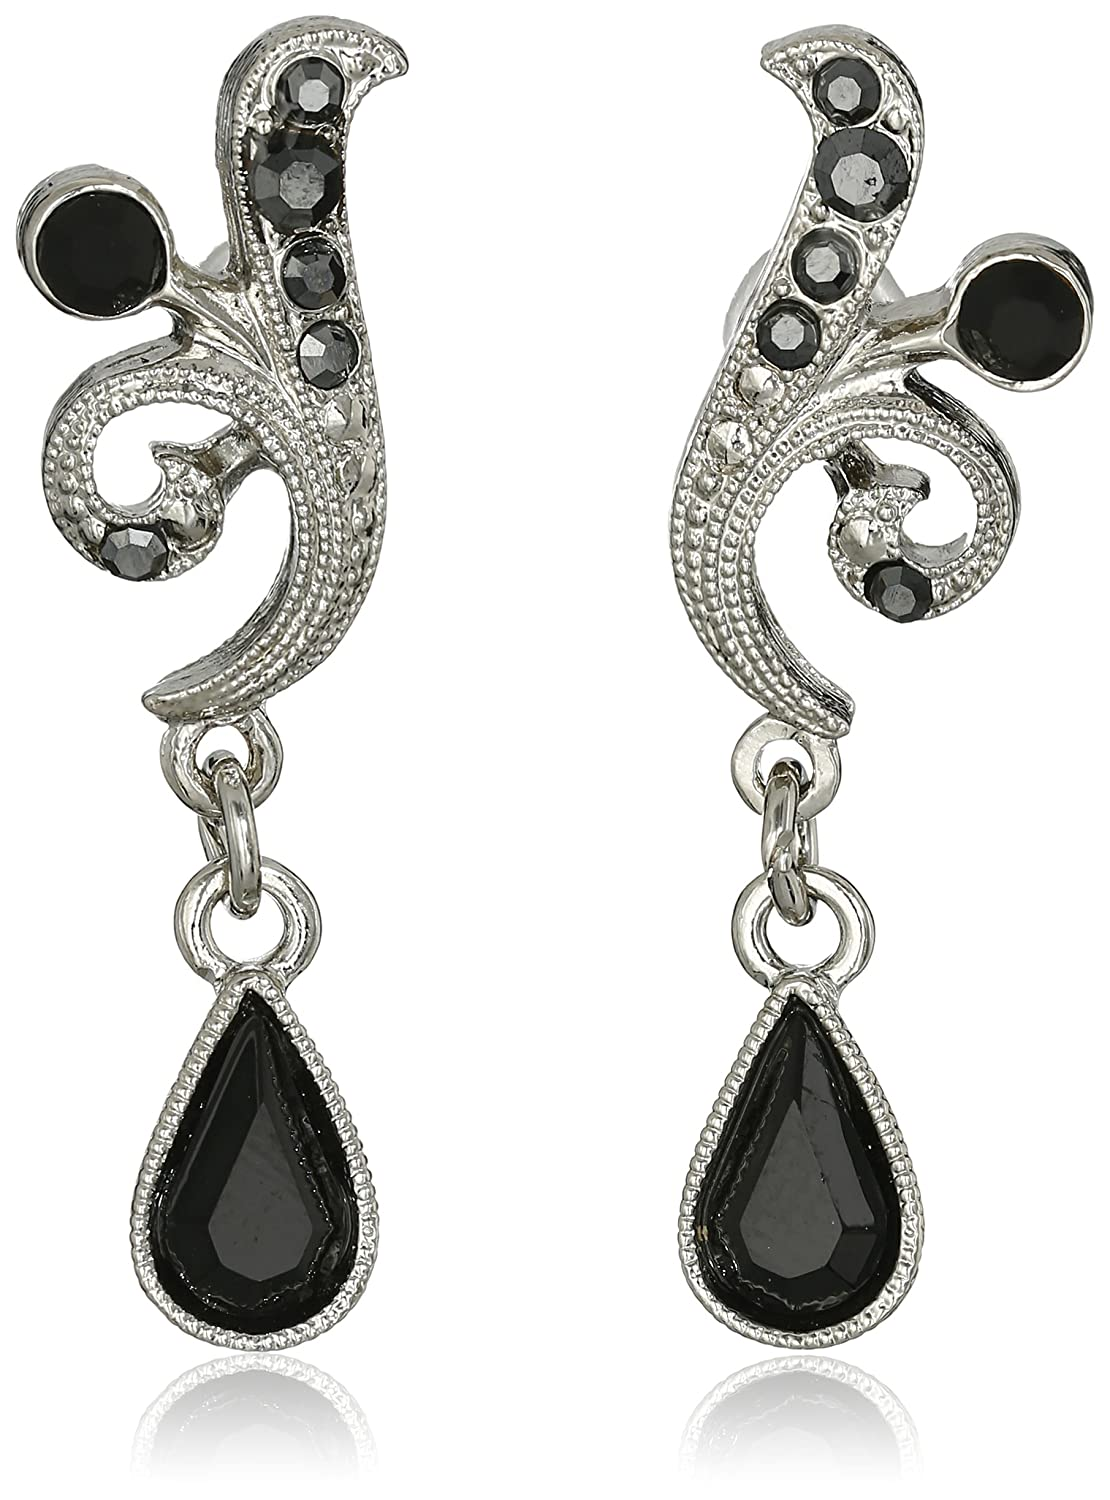 1920s Jewelry Styles History 1928 Jewelry Silver-Tone Black and Hematite Color Crystal Vine Drop Earrings $21.00 AT vintagedancer.com